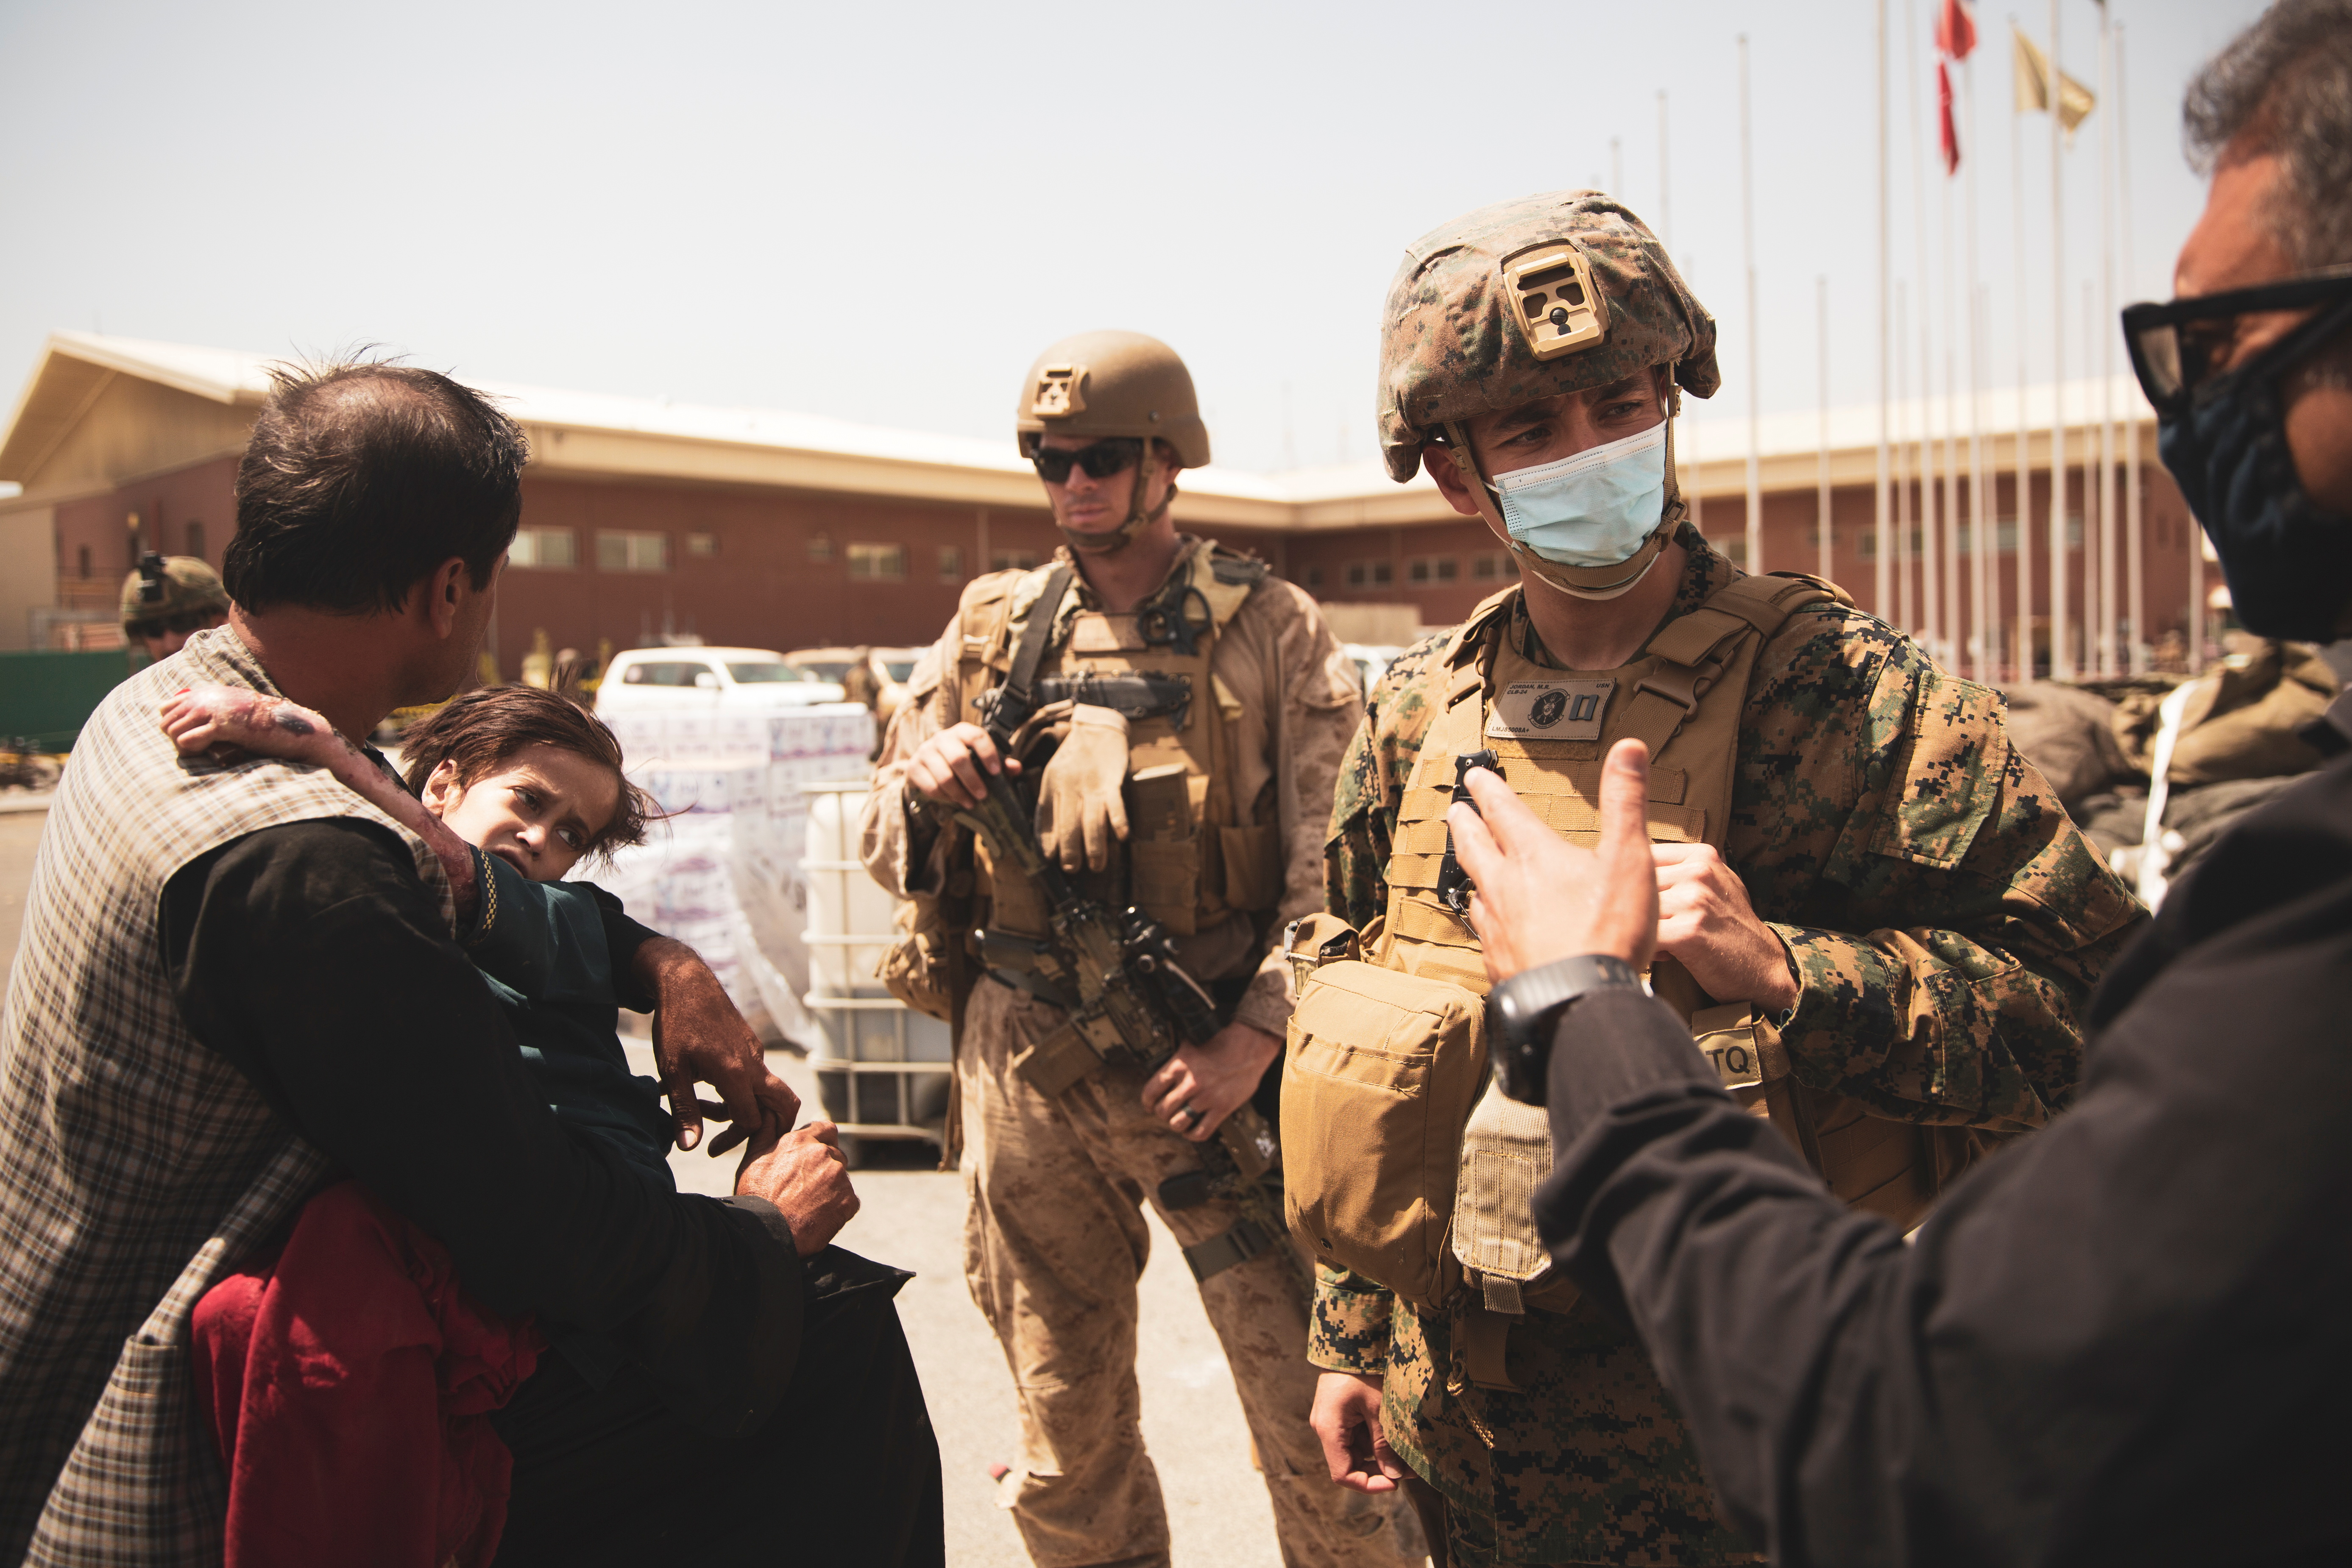 A U.S. Navy medical surgeon with the 24th Marine Expeditionary Unit (MEU) talks to an interpreter as he provides medical assistance to a family during an evacuation at Hamid Karzai International Airport, Kabul, Afghanistan, August 21, 2021. Picture taken August 21, 2021.  U.S. Marine Corps/Staff Sgt. Victor Mancilla/Handout via REUTERS/Files